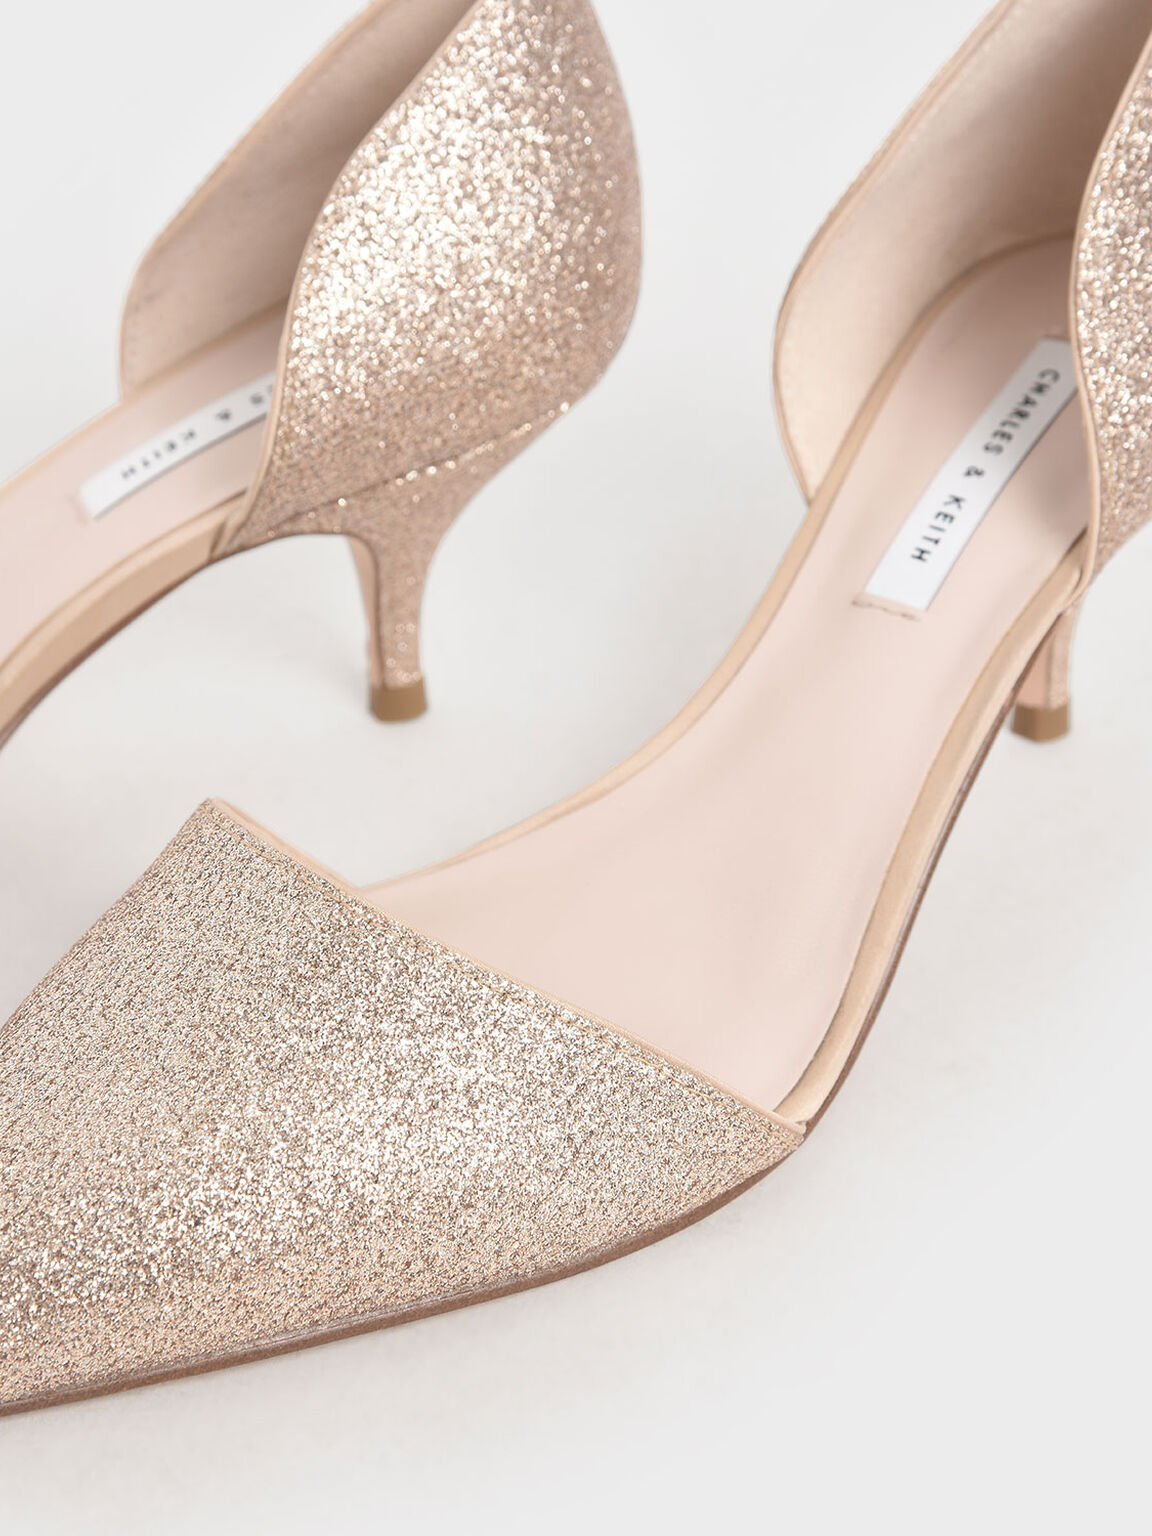 D'Orsay Glitter Fabric Kitten Heel Pumps, Gold, hi-res